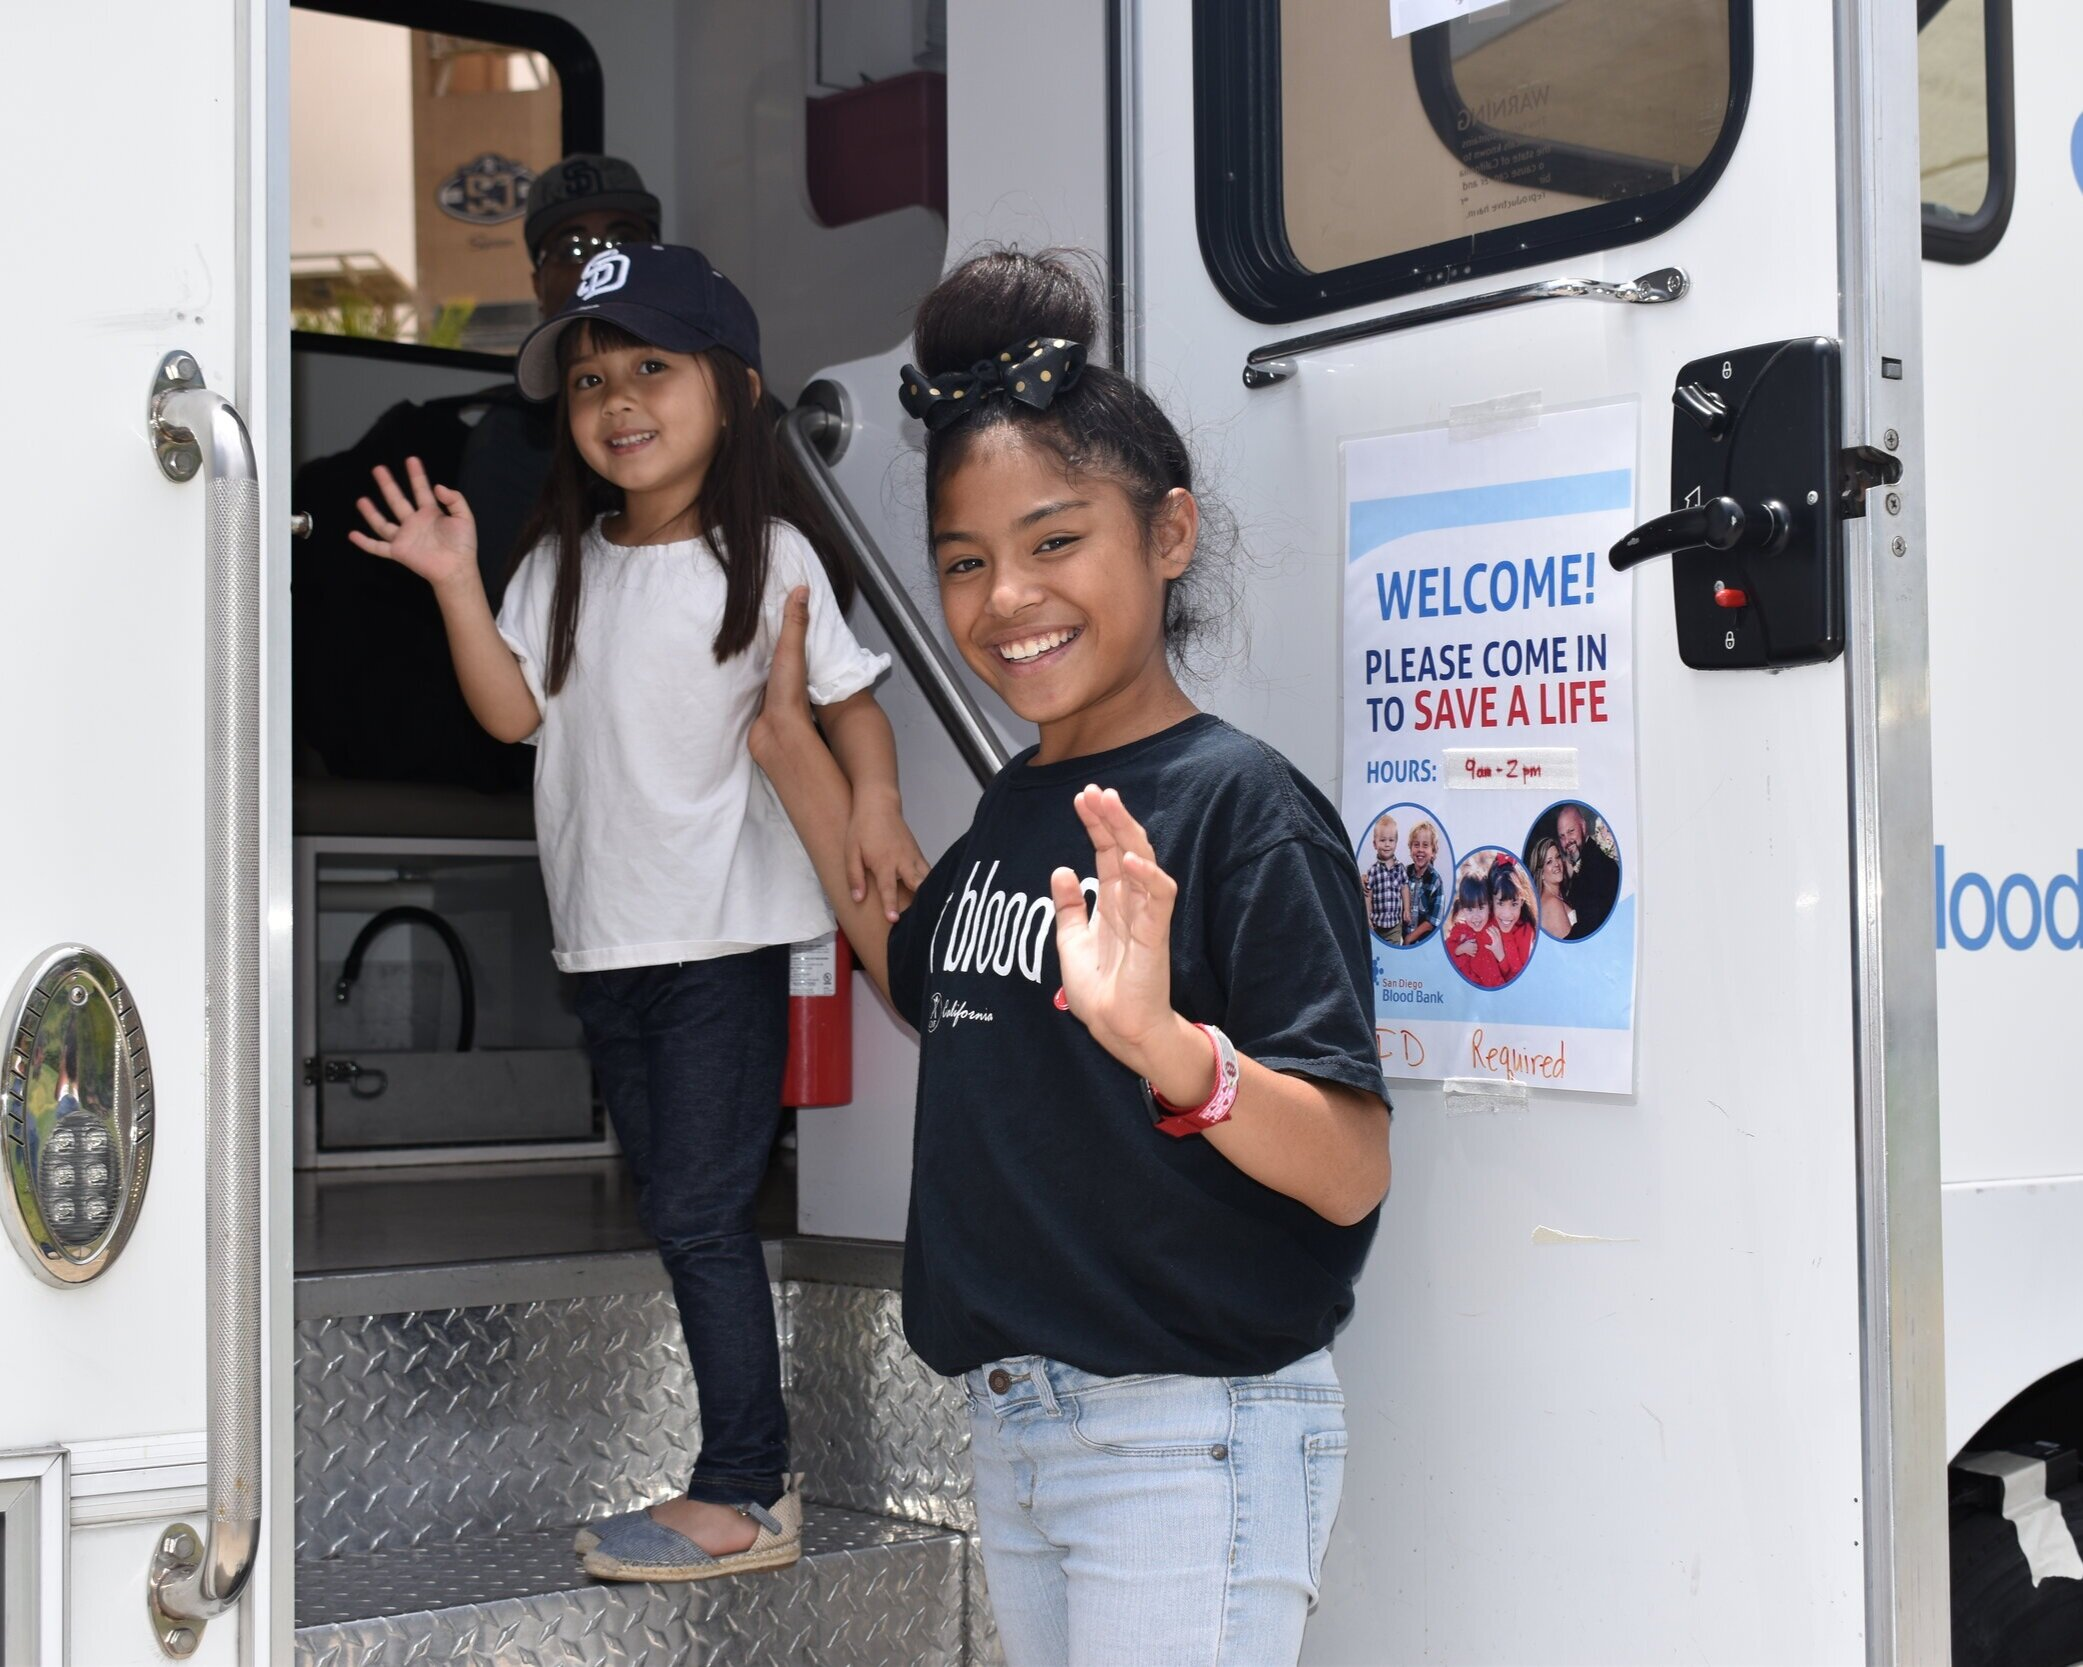 Kamila and Ella need red blood cell transfusions every three weeks to treat a rare form of anemia – beta thalassemia major. Make an impact by providing monthly support to fuel their lifesaving treatments.